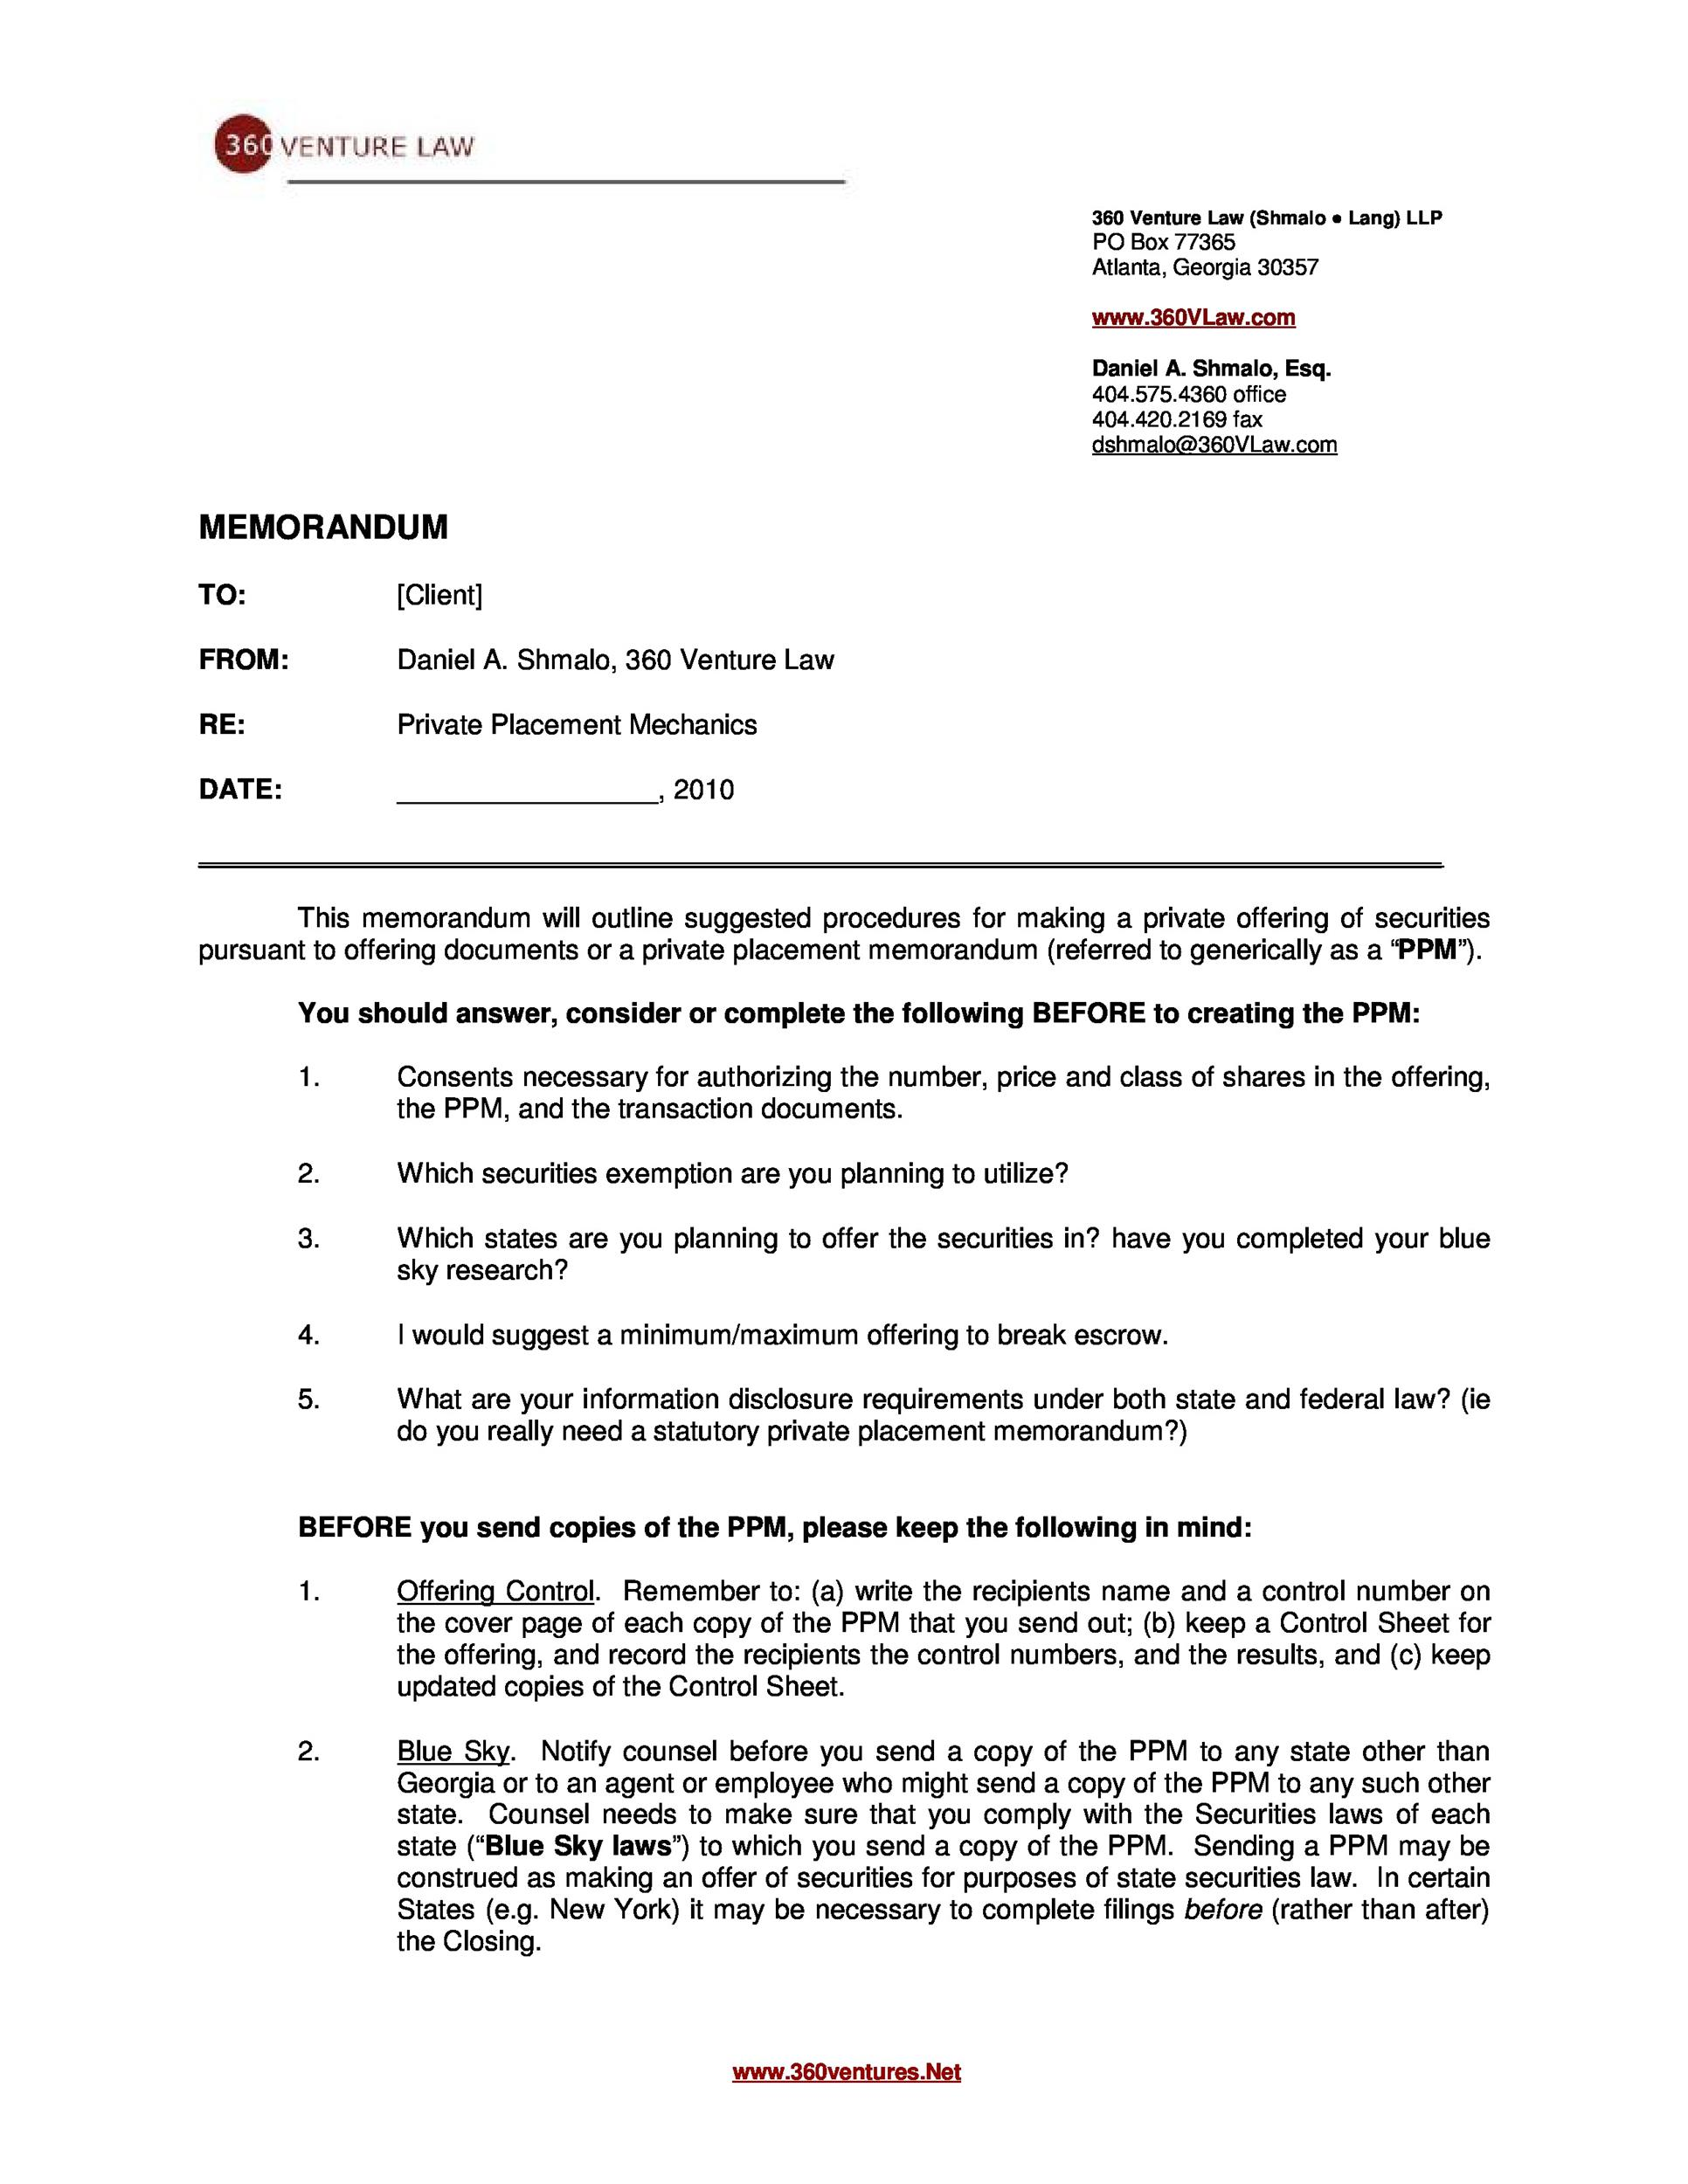 private placement memorandum template 20